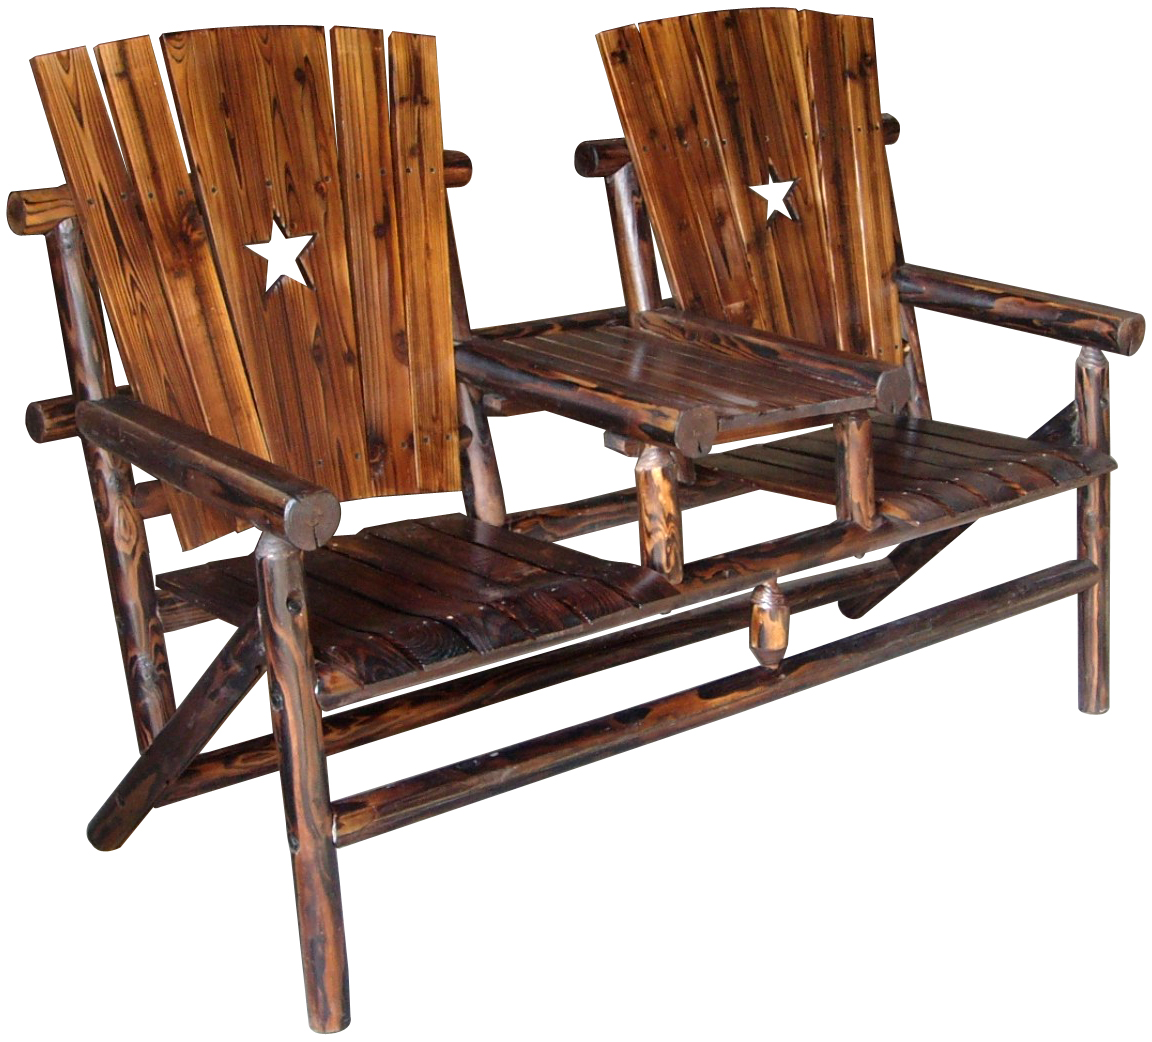 Superbe Texas Double Bench And Tray With The Texas Lone Star